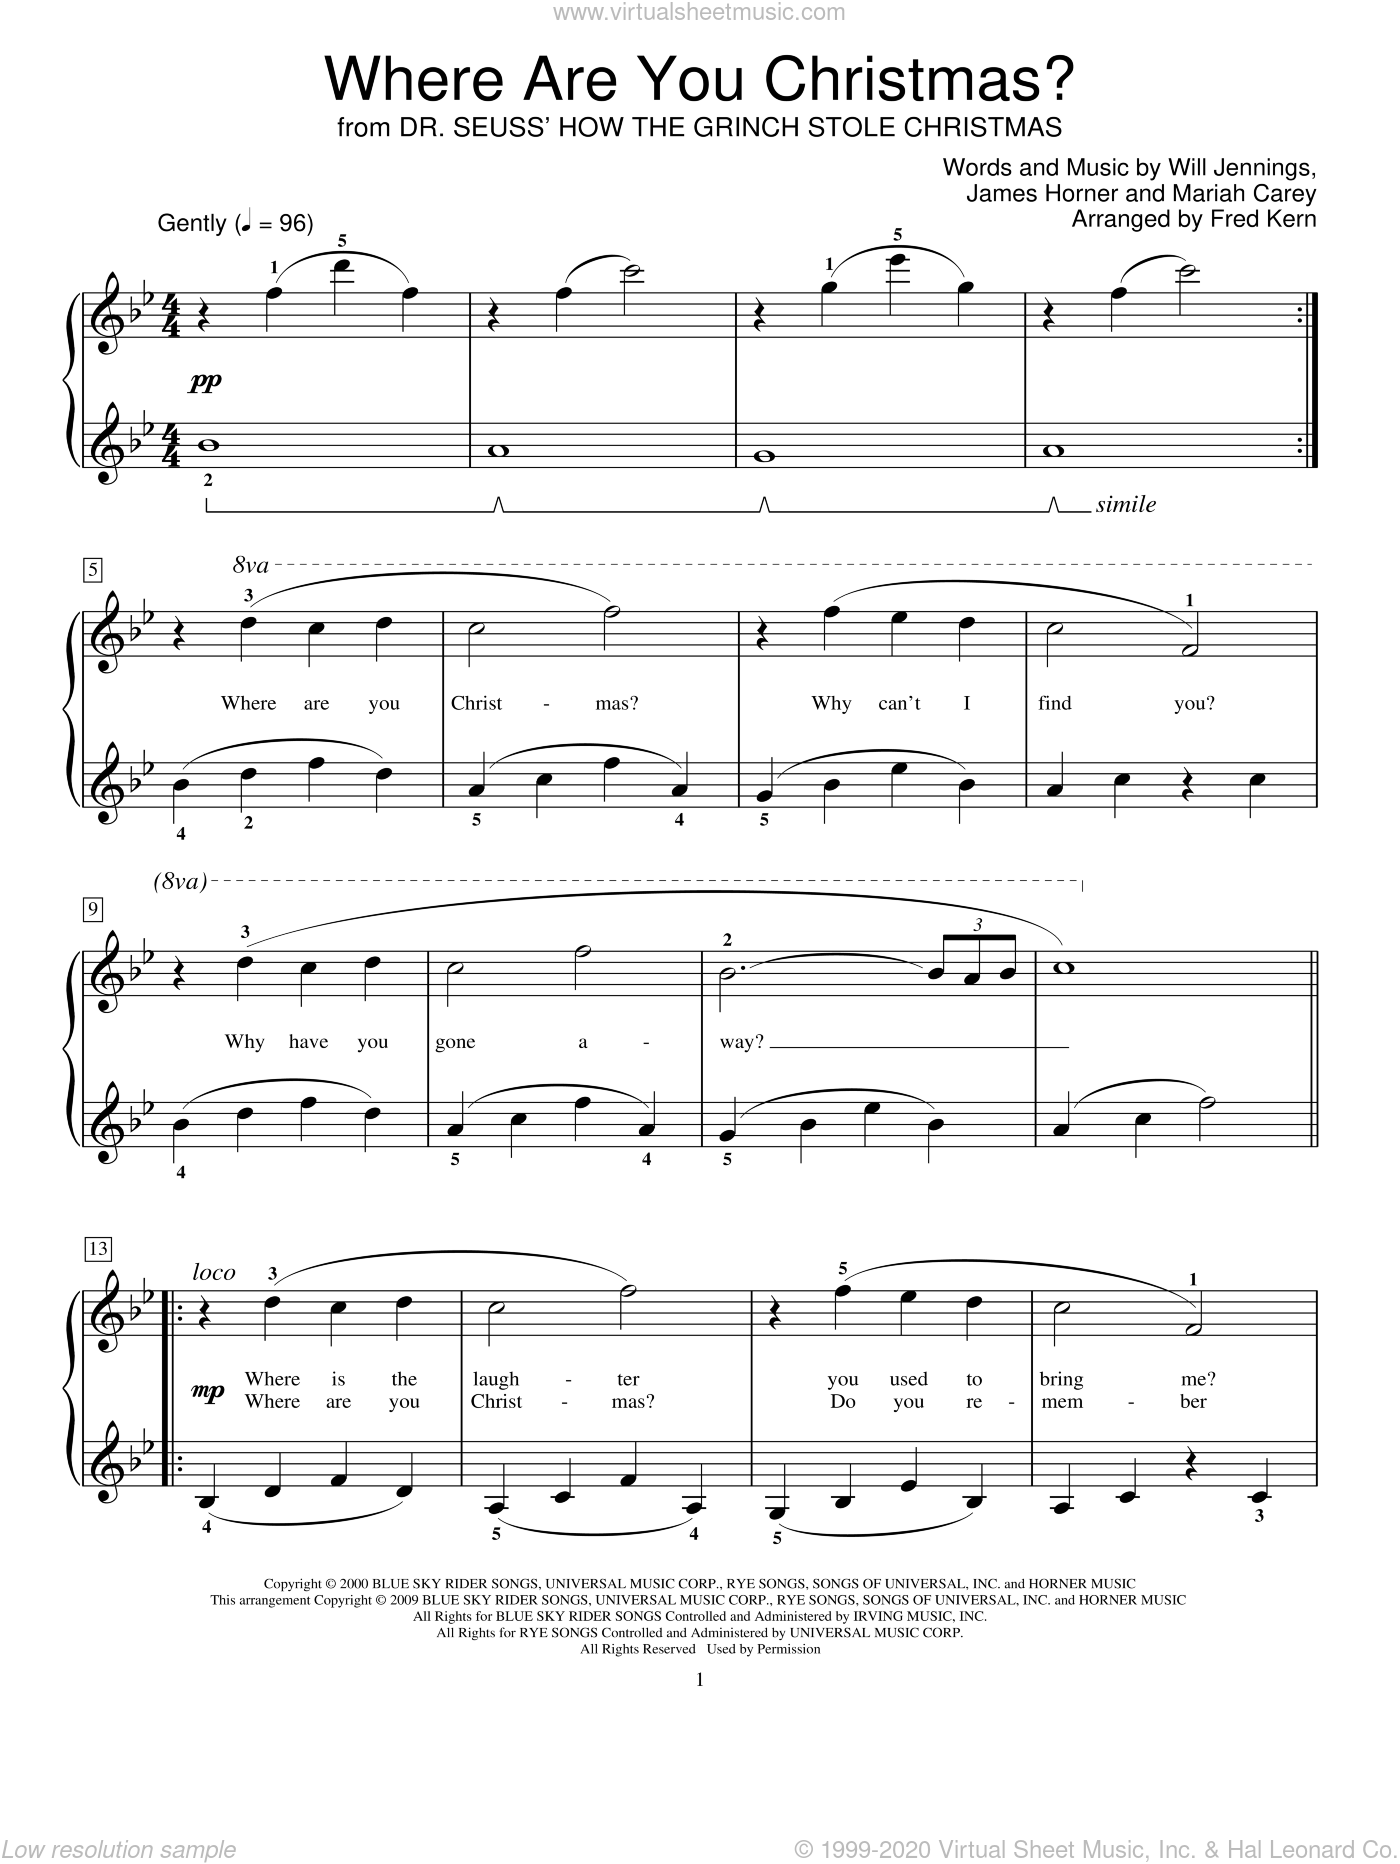 Where Are You Christmas? sheet music for piano solo (elementary) by Will Jennings, Fred Kern, Faith Hill, Miscellaneous, James Horner and Mariah Carey